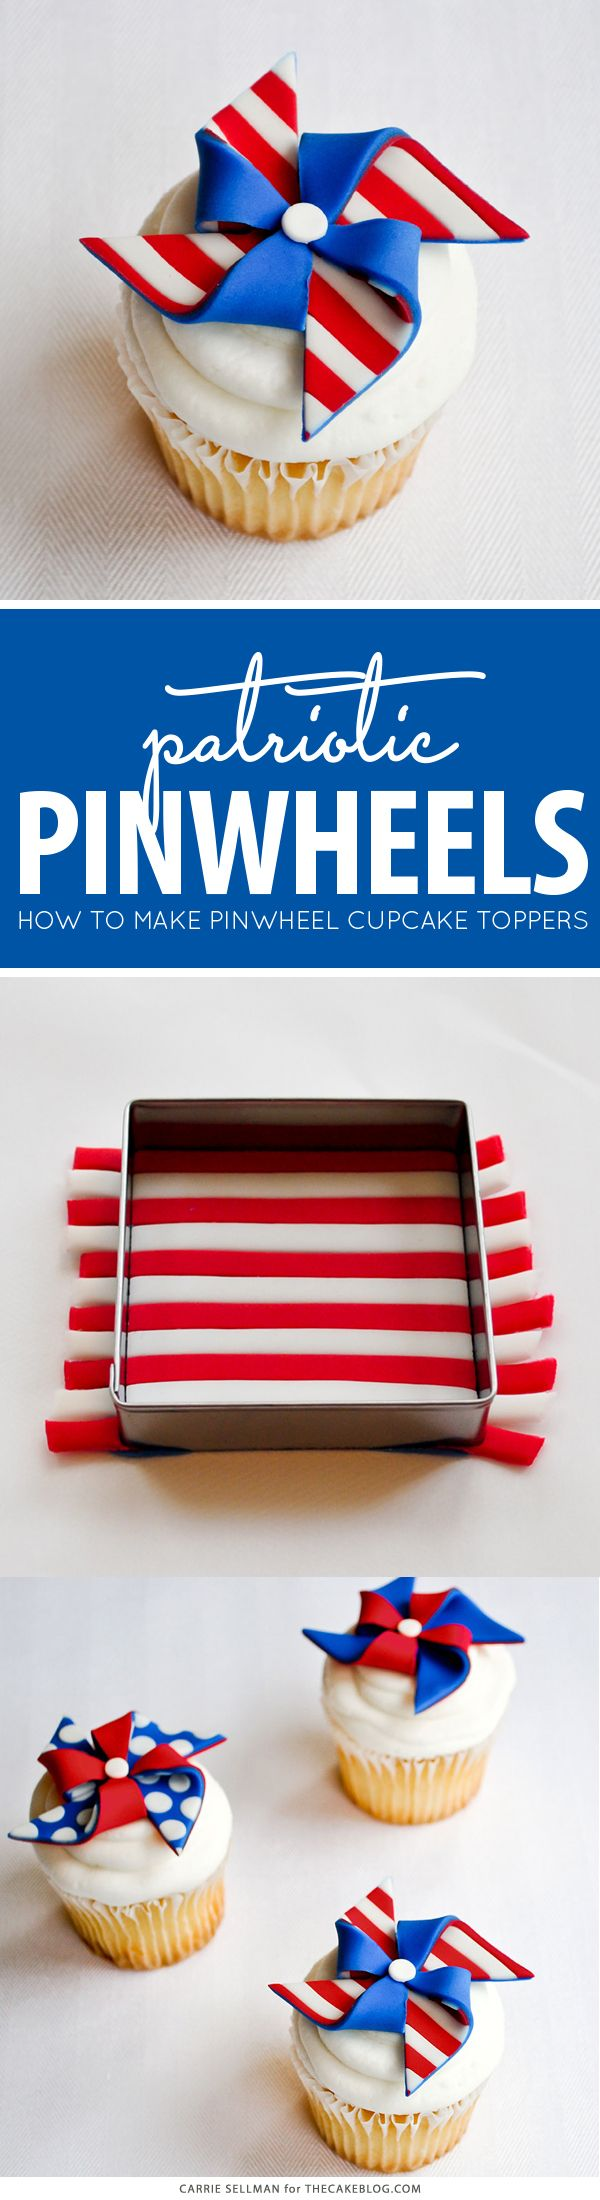 DIY Patriotic Pinwheel Cupcakes in Red, White & Blue   by Carrie Sellman for TheCakeBlog.com